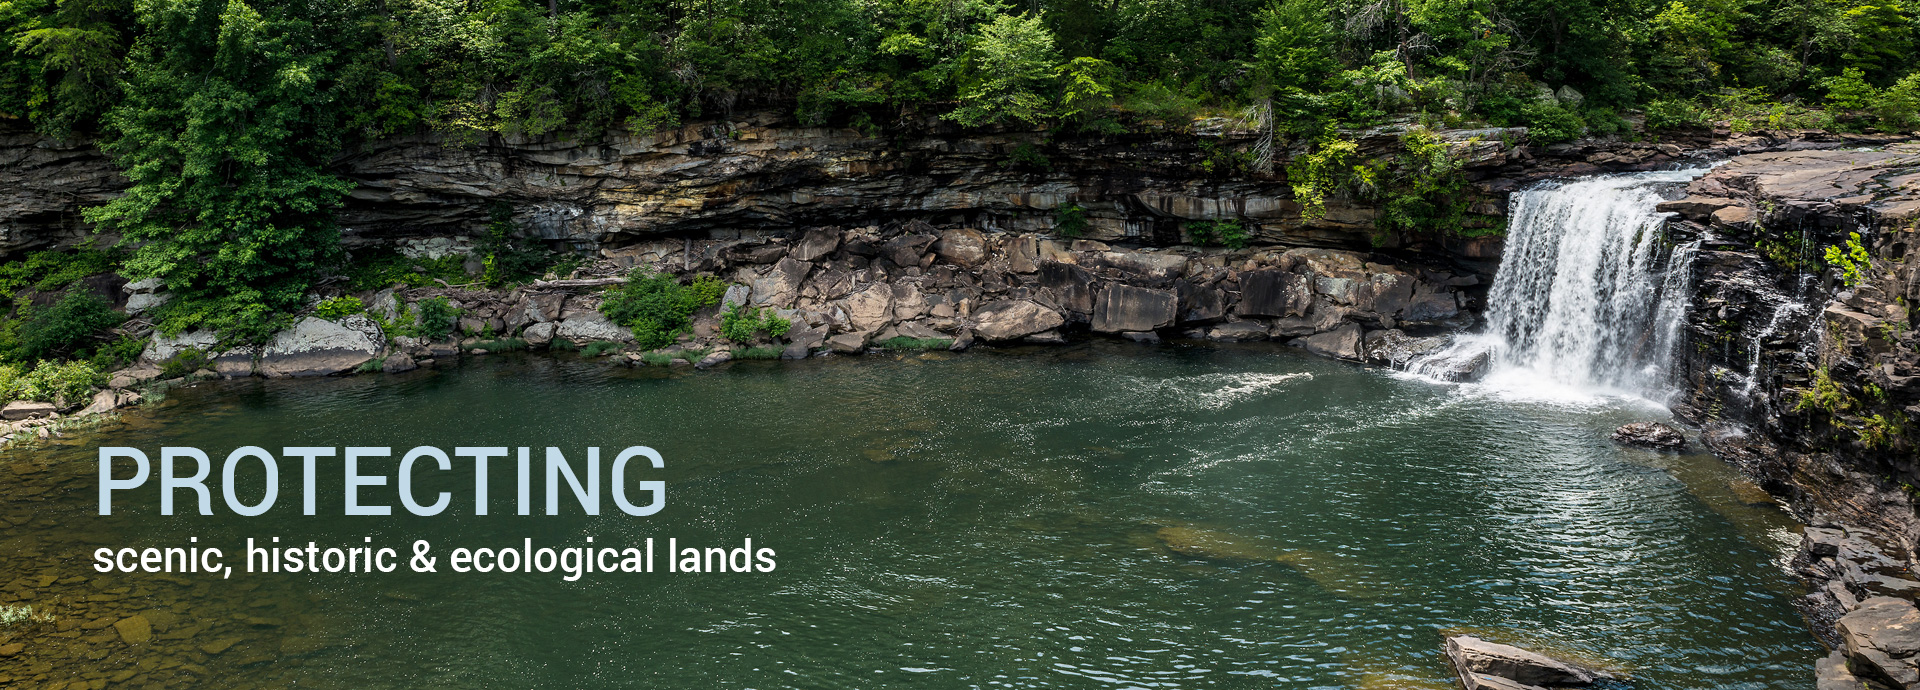 protecting scenic, historical, & ecological lands